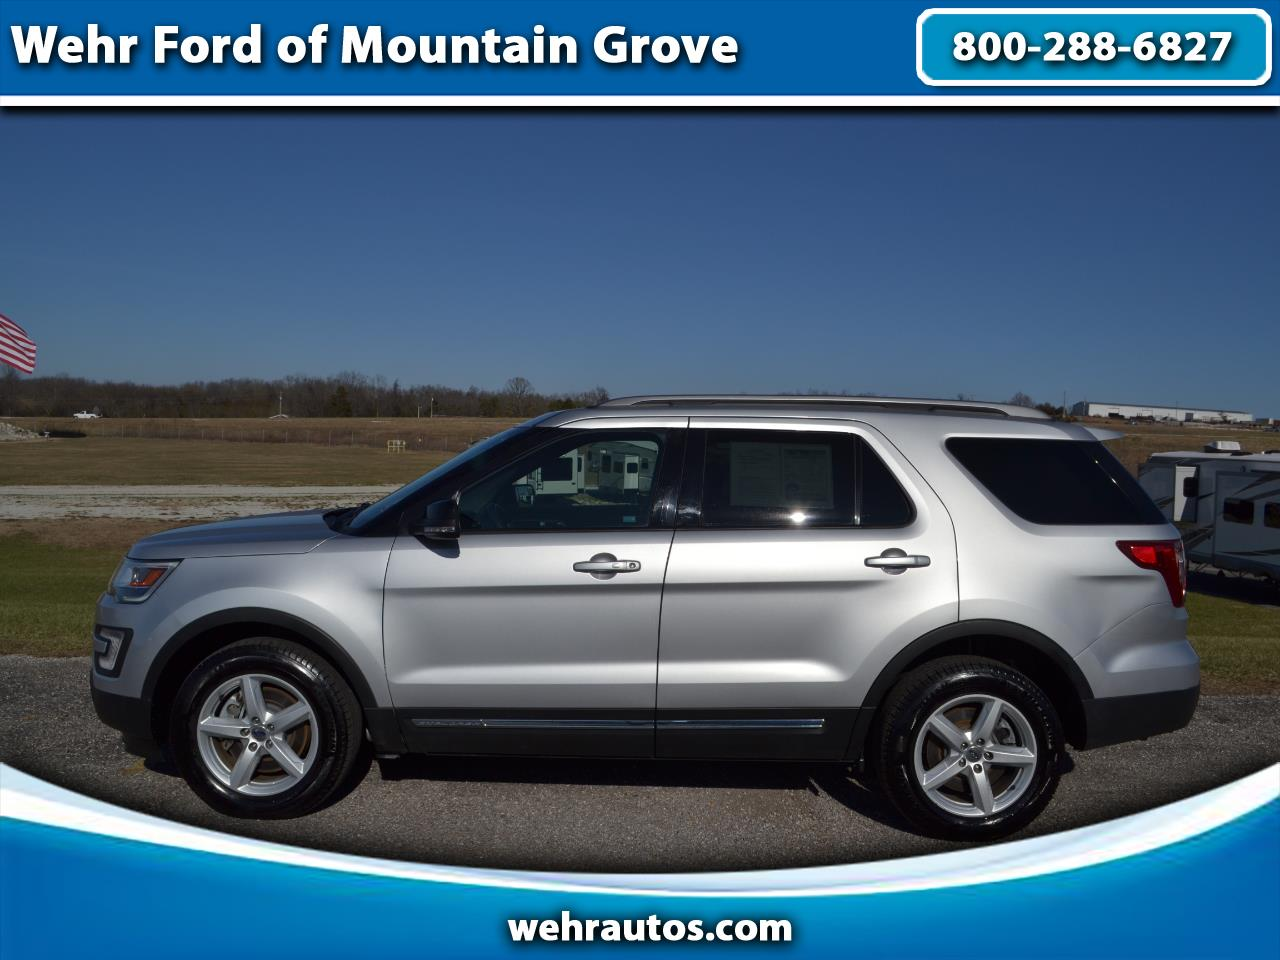 2017 Ford EXPLORER X XLT 4WD